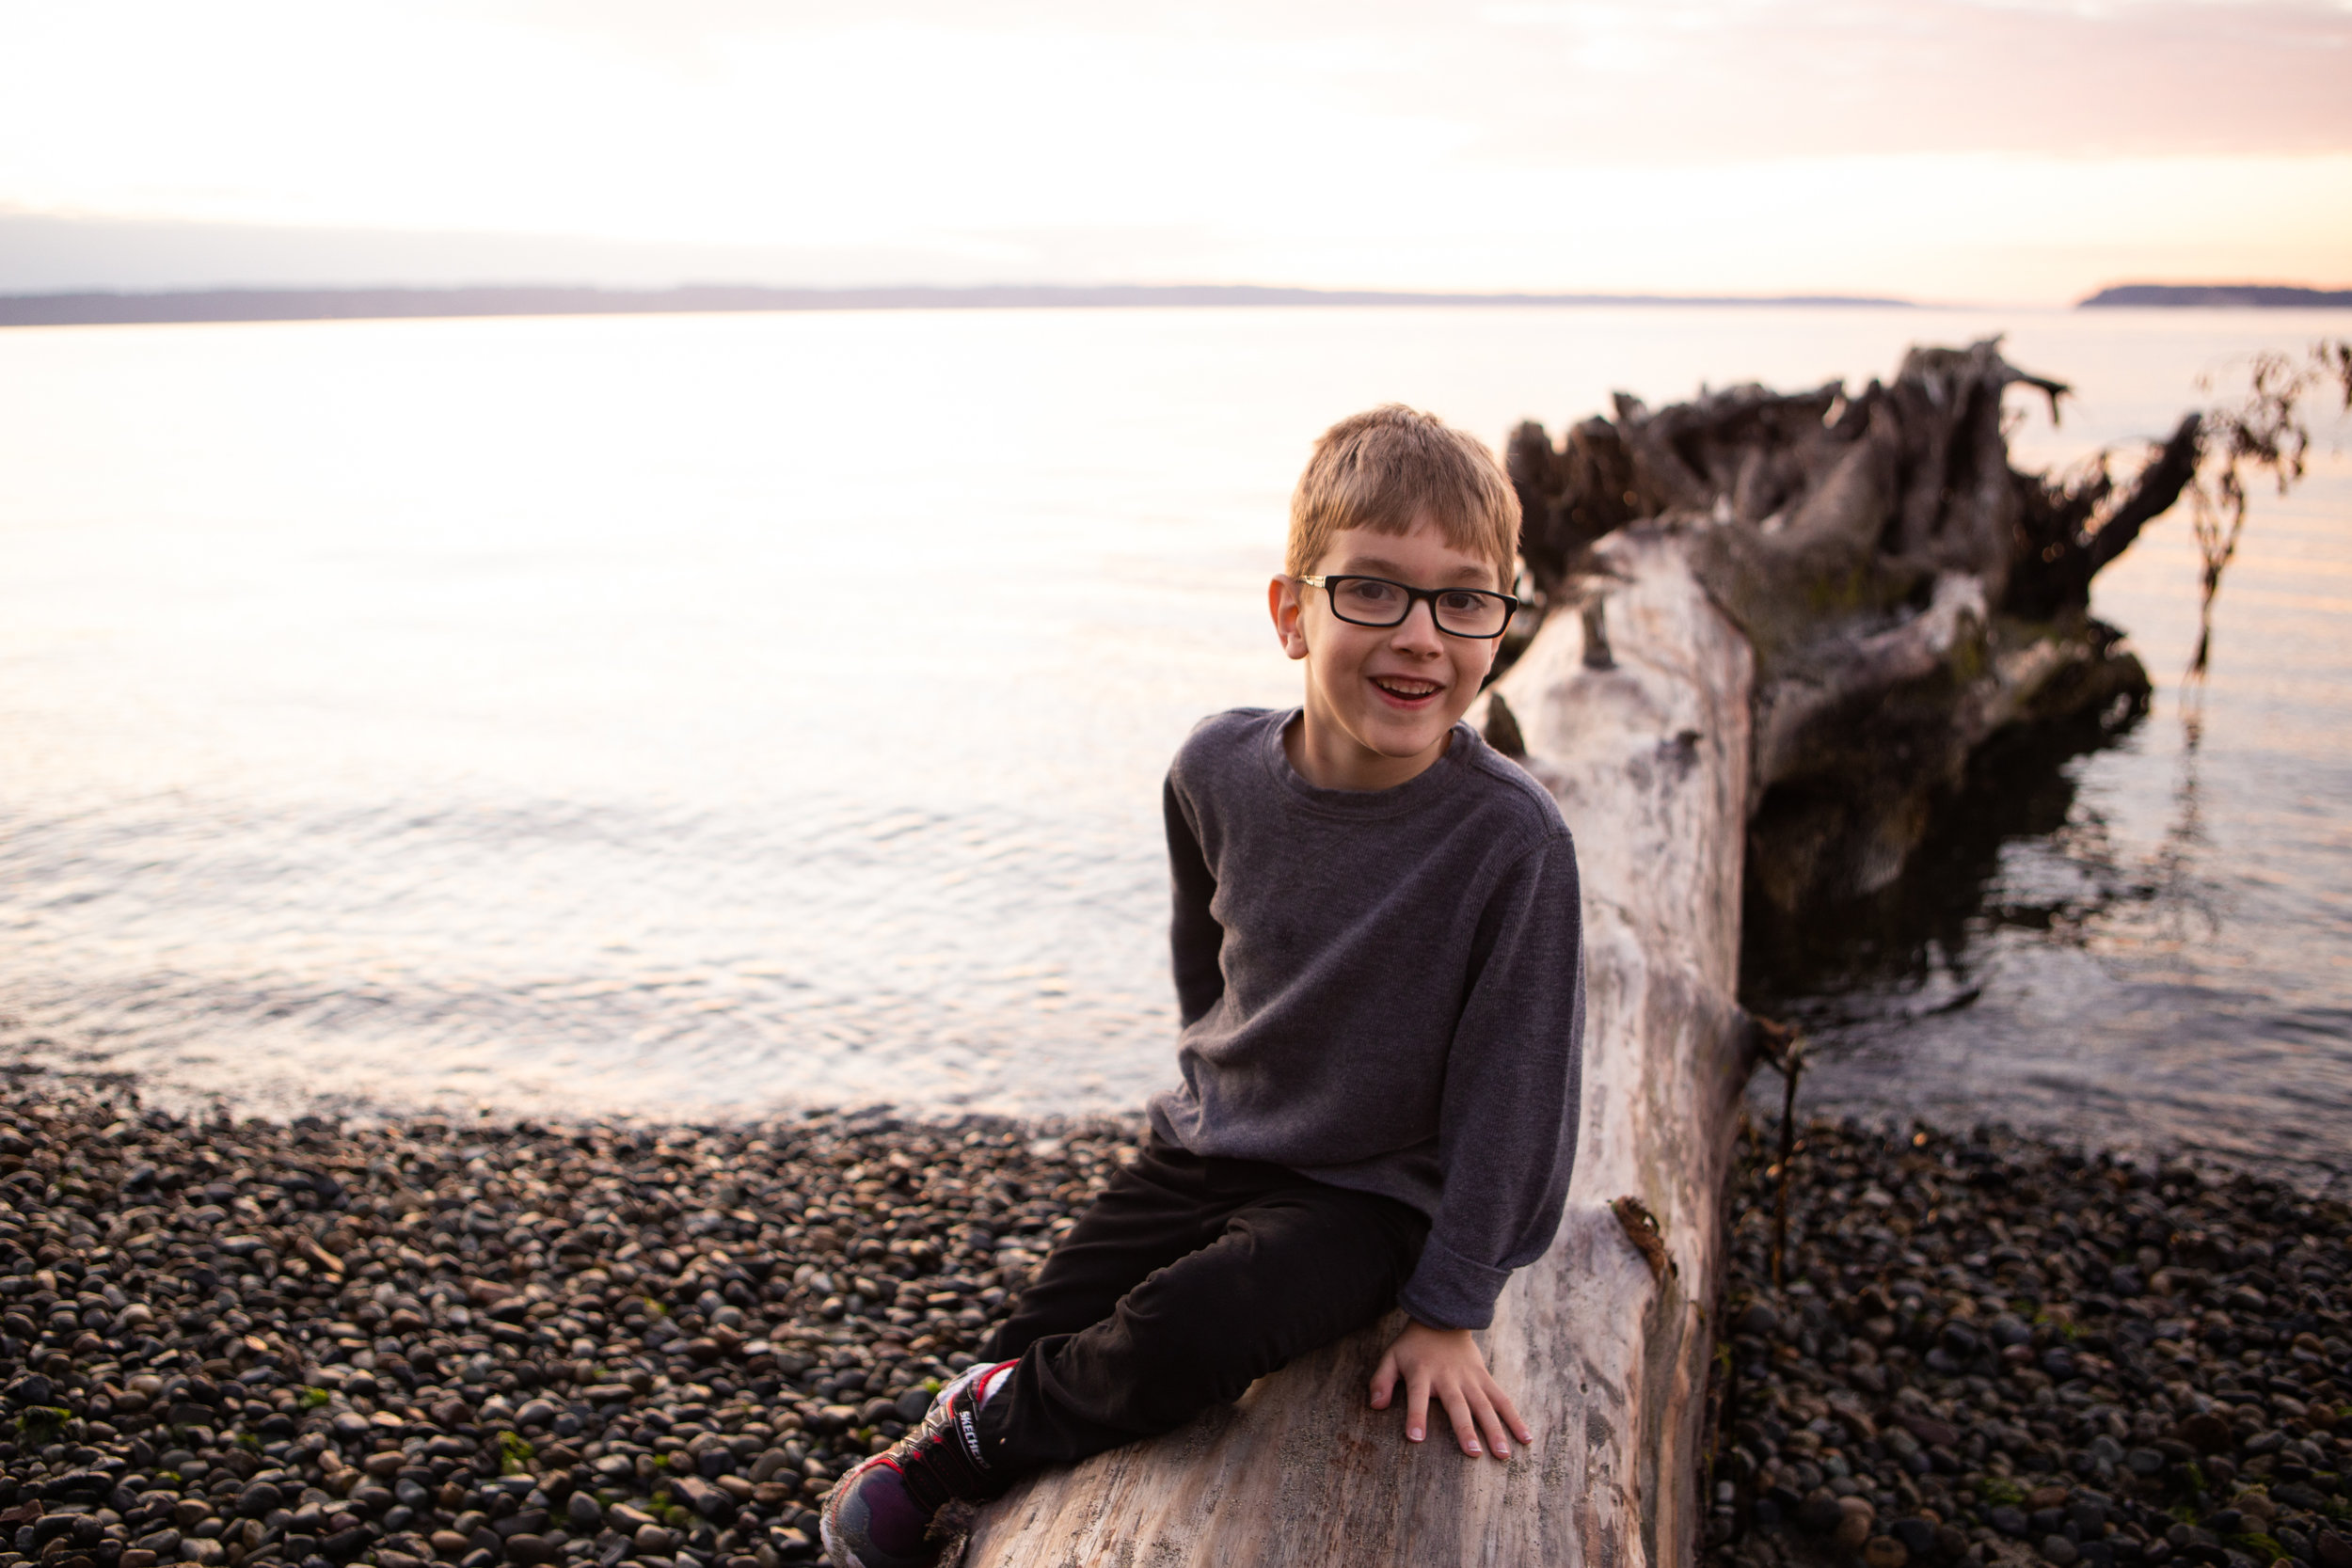 Boy smiling while sitting on log on a pebbly beach